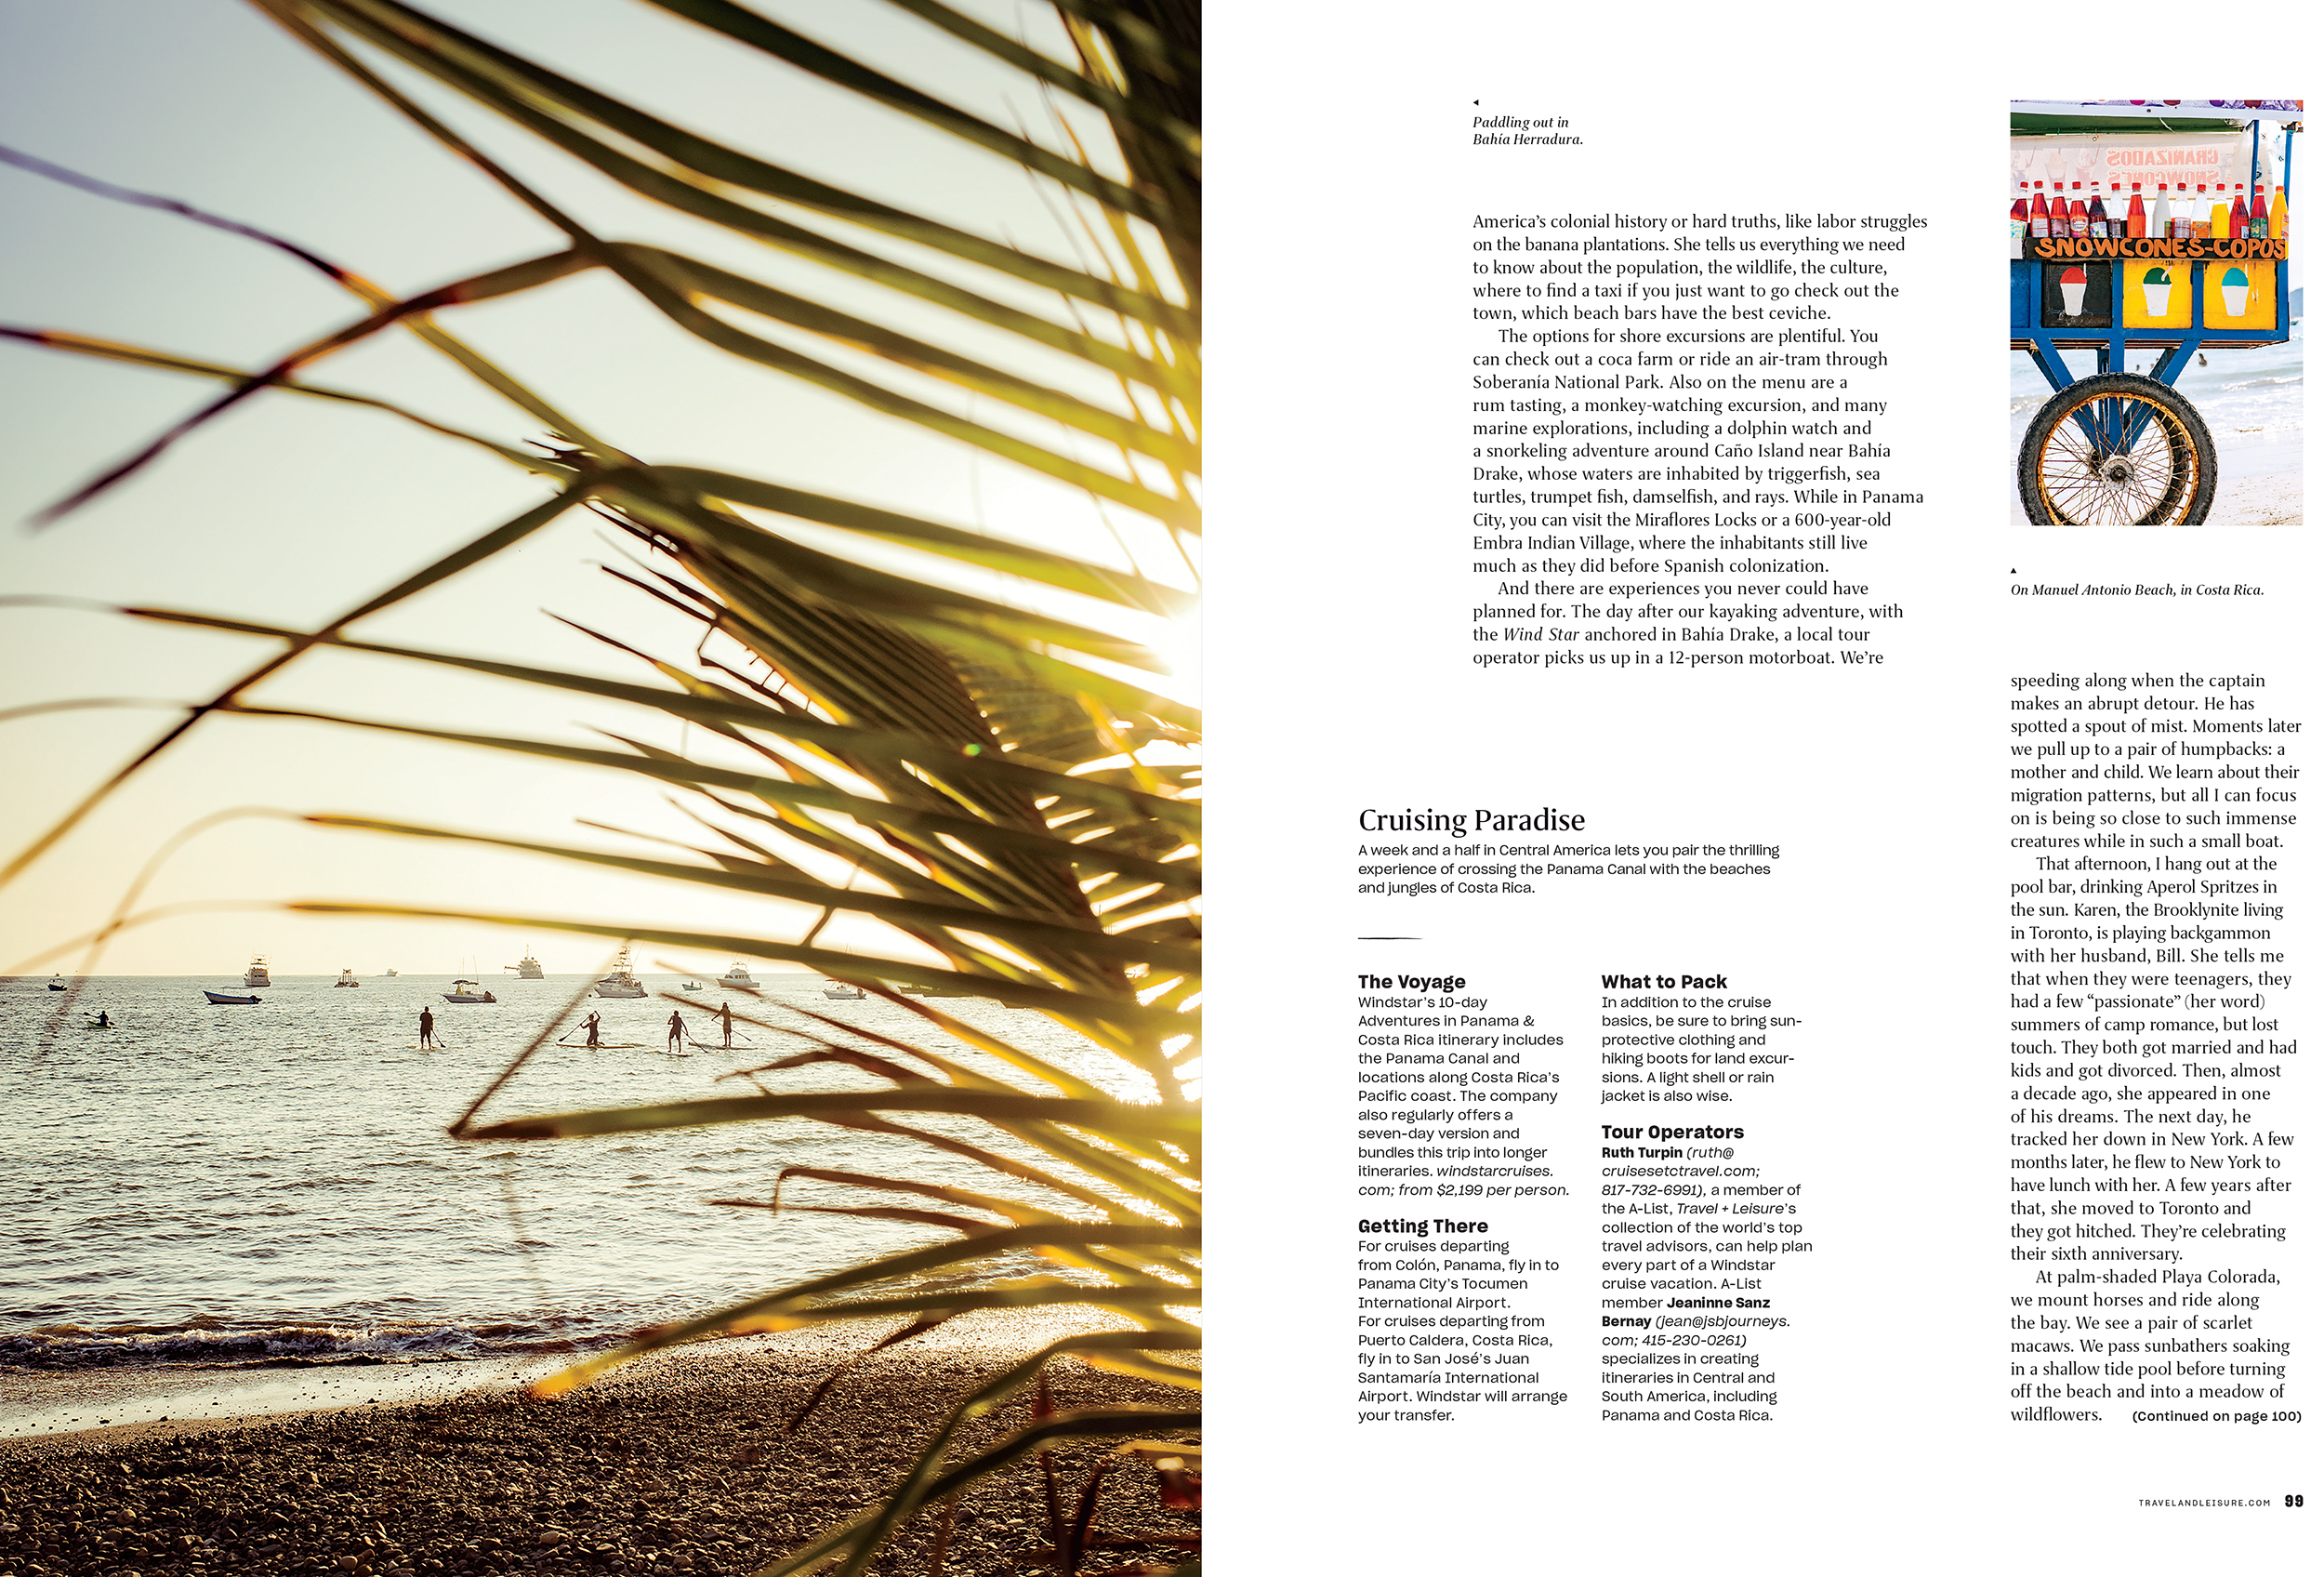 092-100 TL0719_archive TL_0719_FEAT_Windstar_text.indd